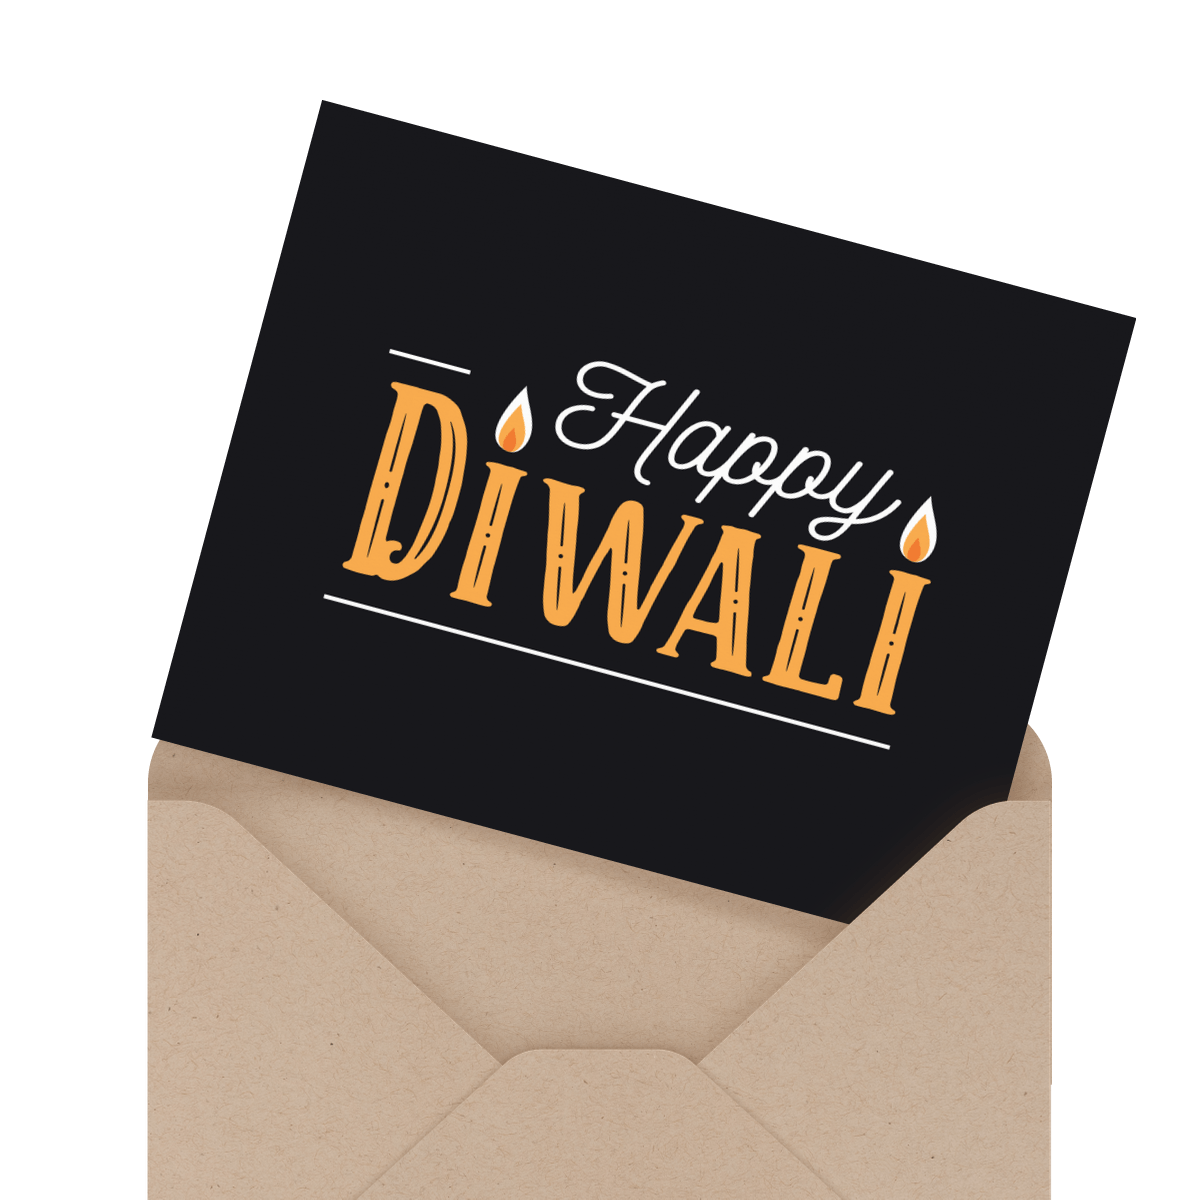 beautiful diwali card